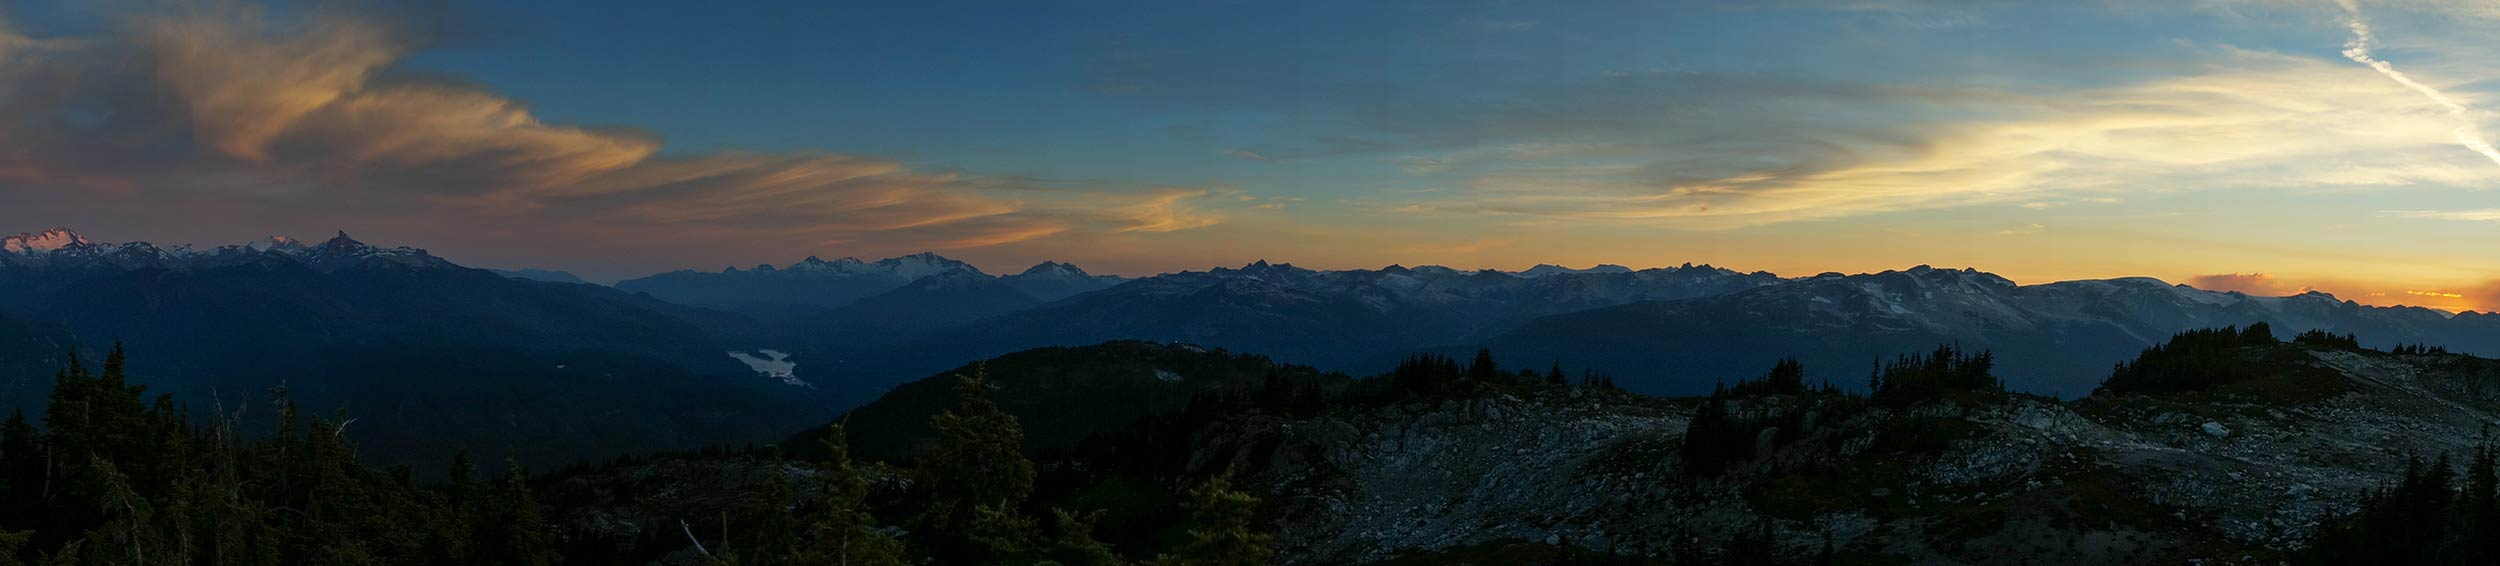 sproatt_alpine_trail_sunset_pano8.jpg